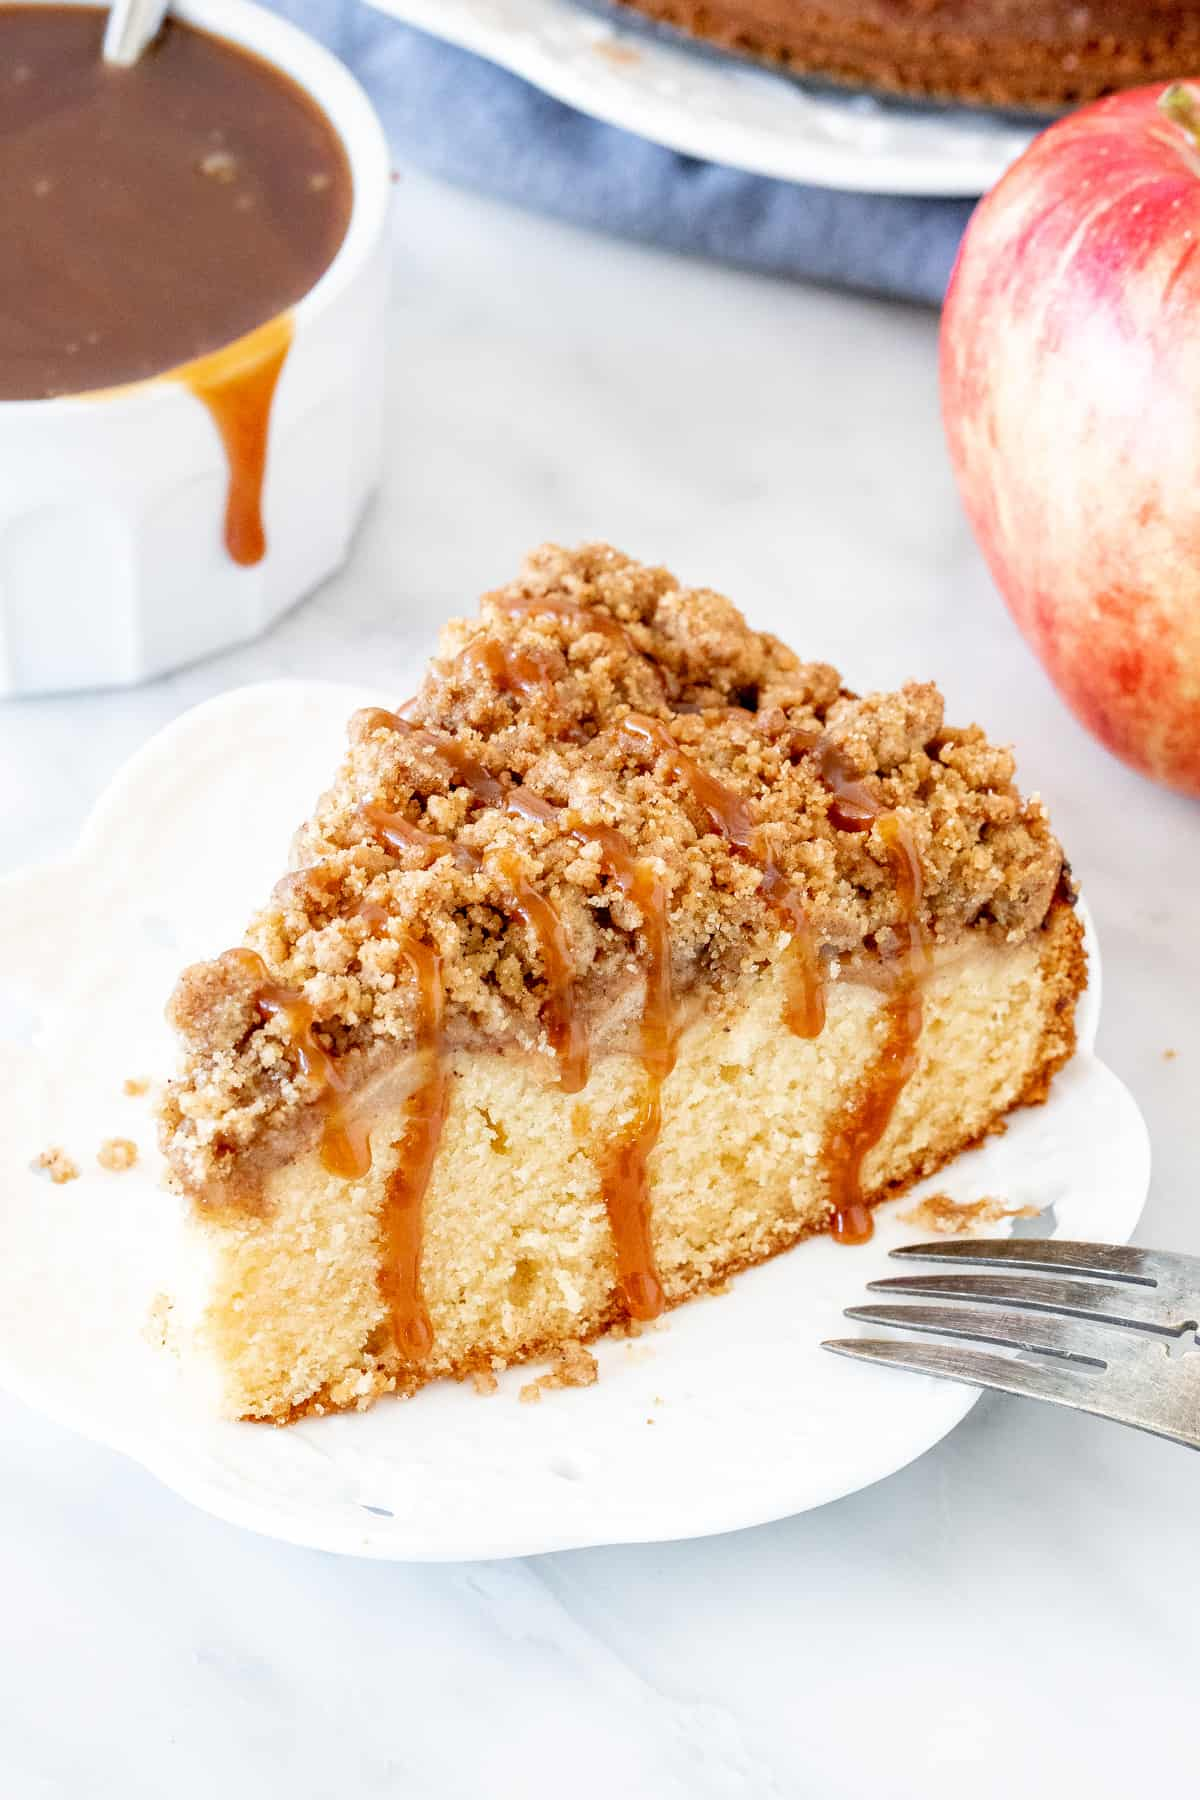 Slice of apple coffee cake with a drizzle of caramel sauce.